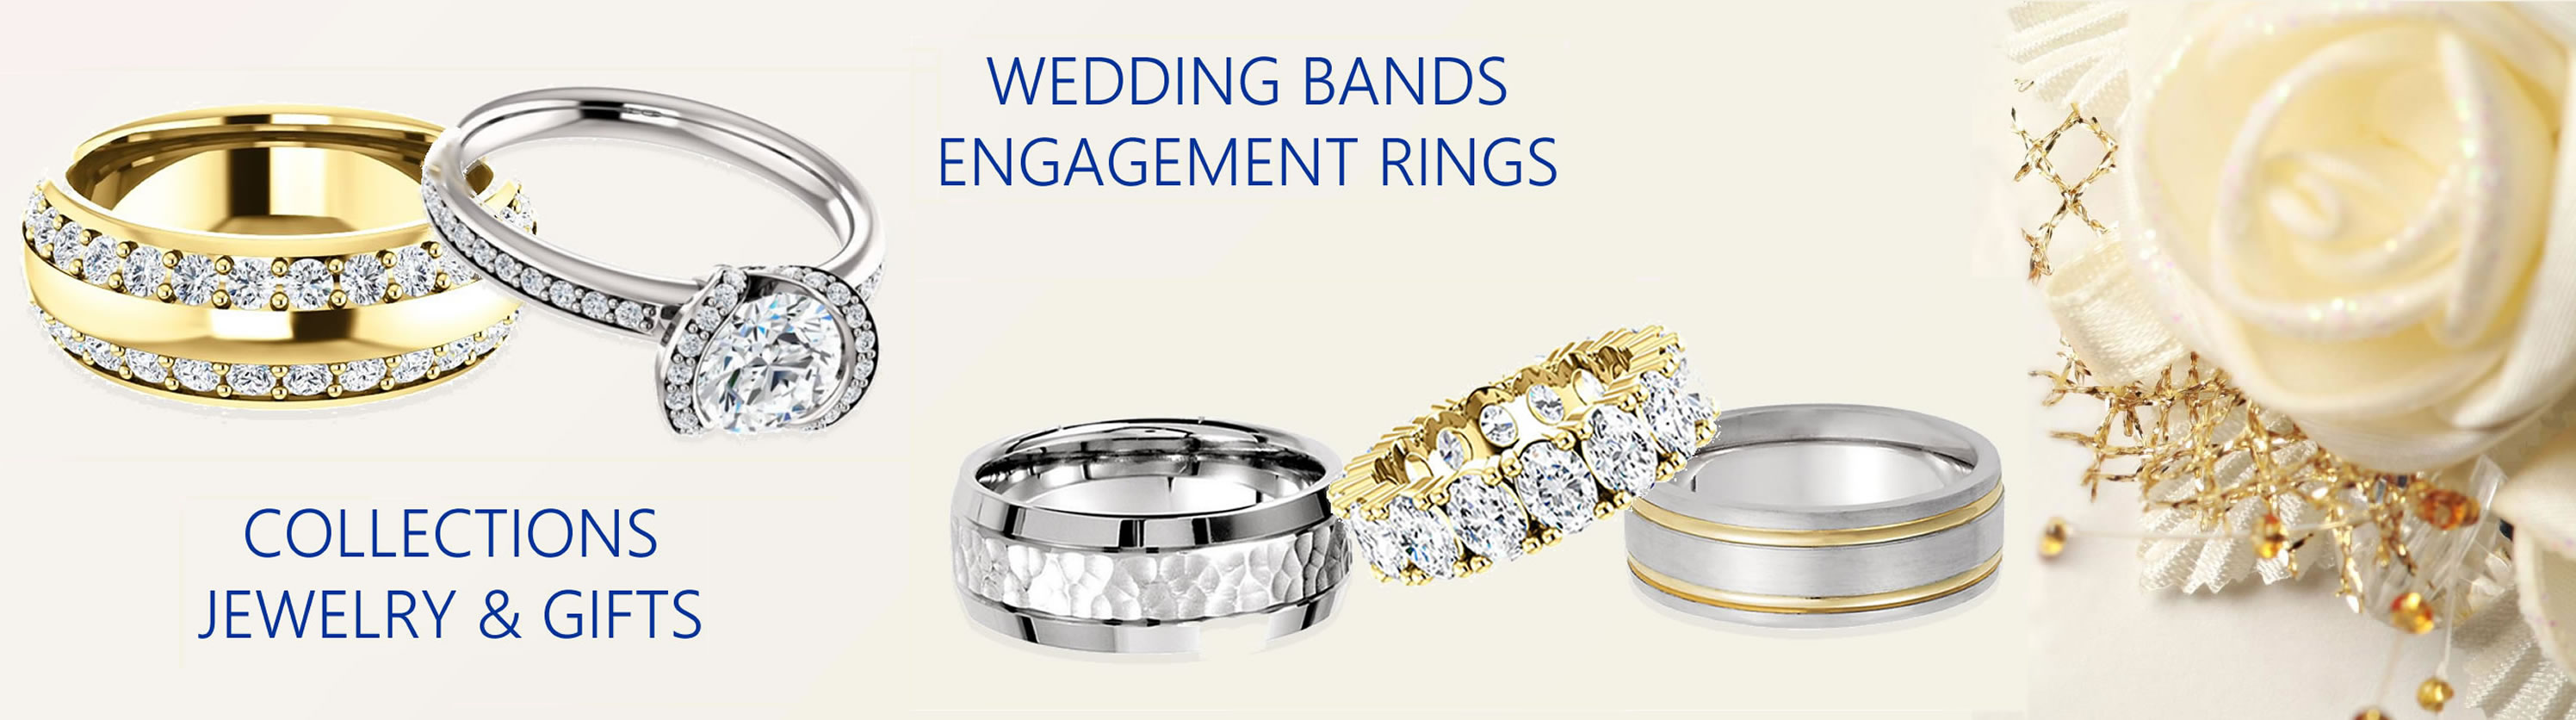 WeddingBands.com - Our Blog.